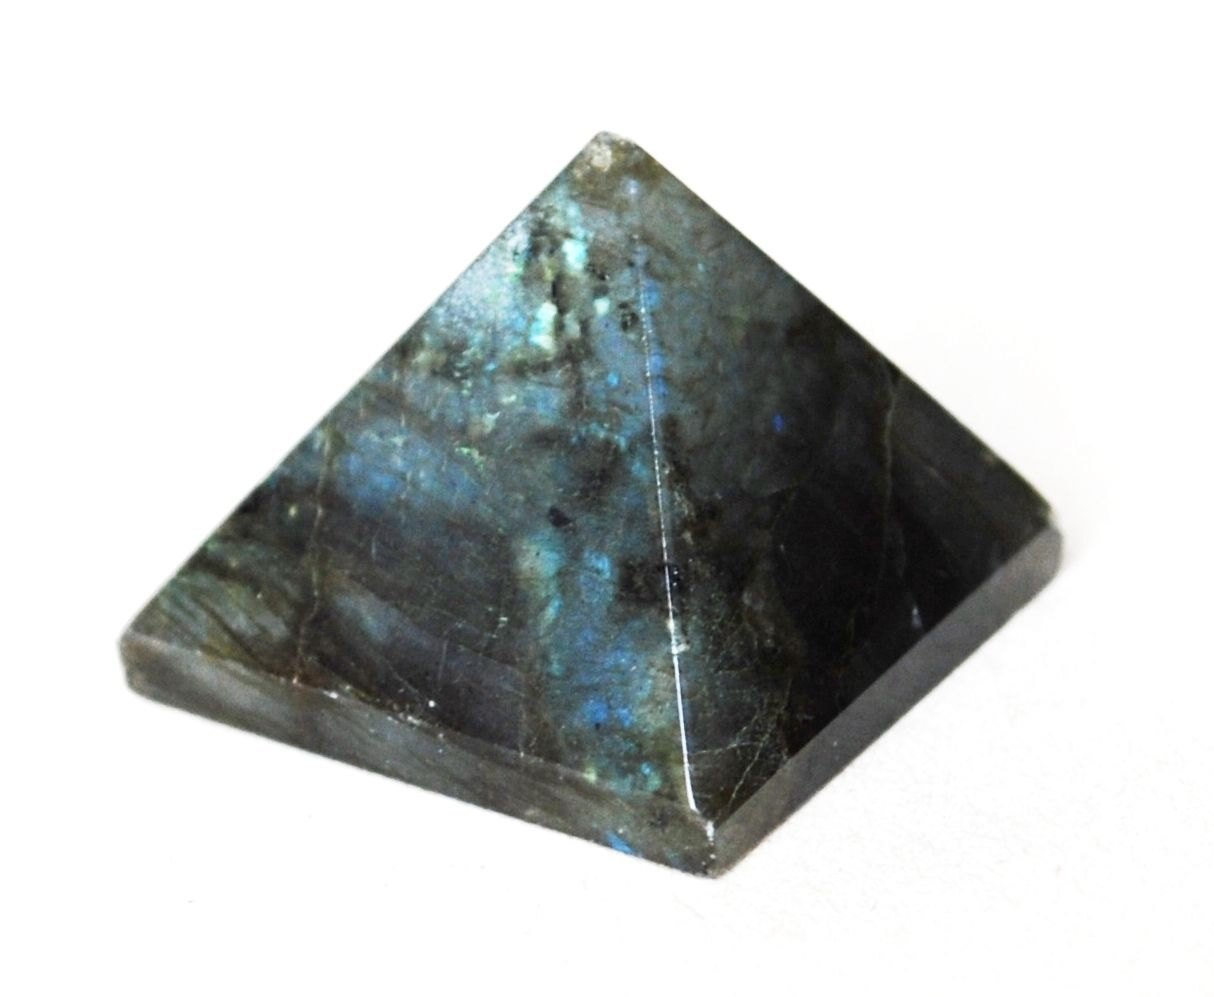 Labradorite Pyramid Crystal (25-30mm)